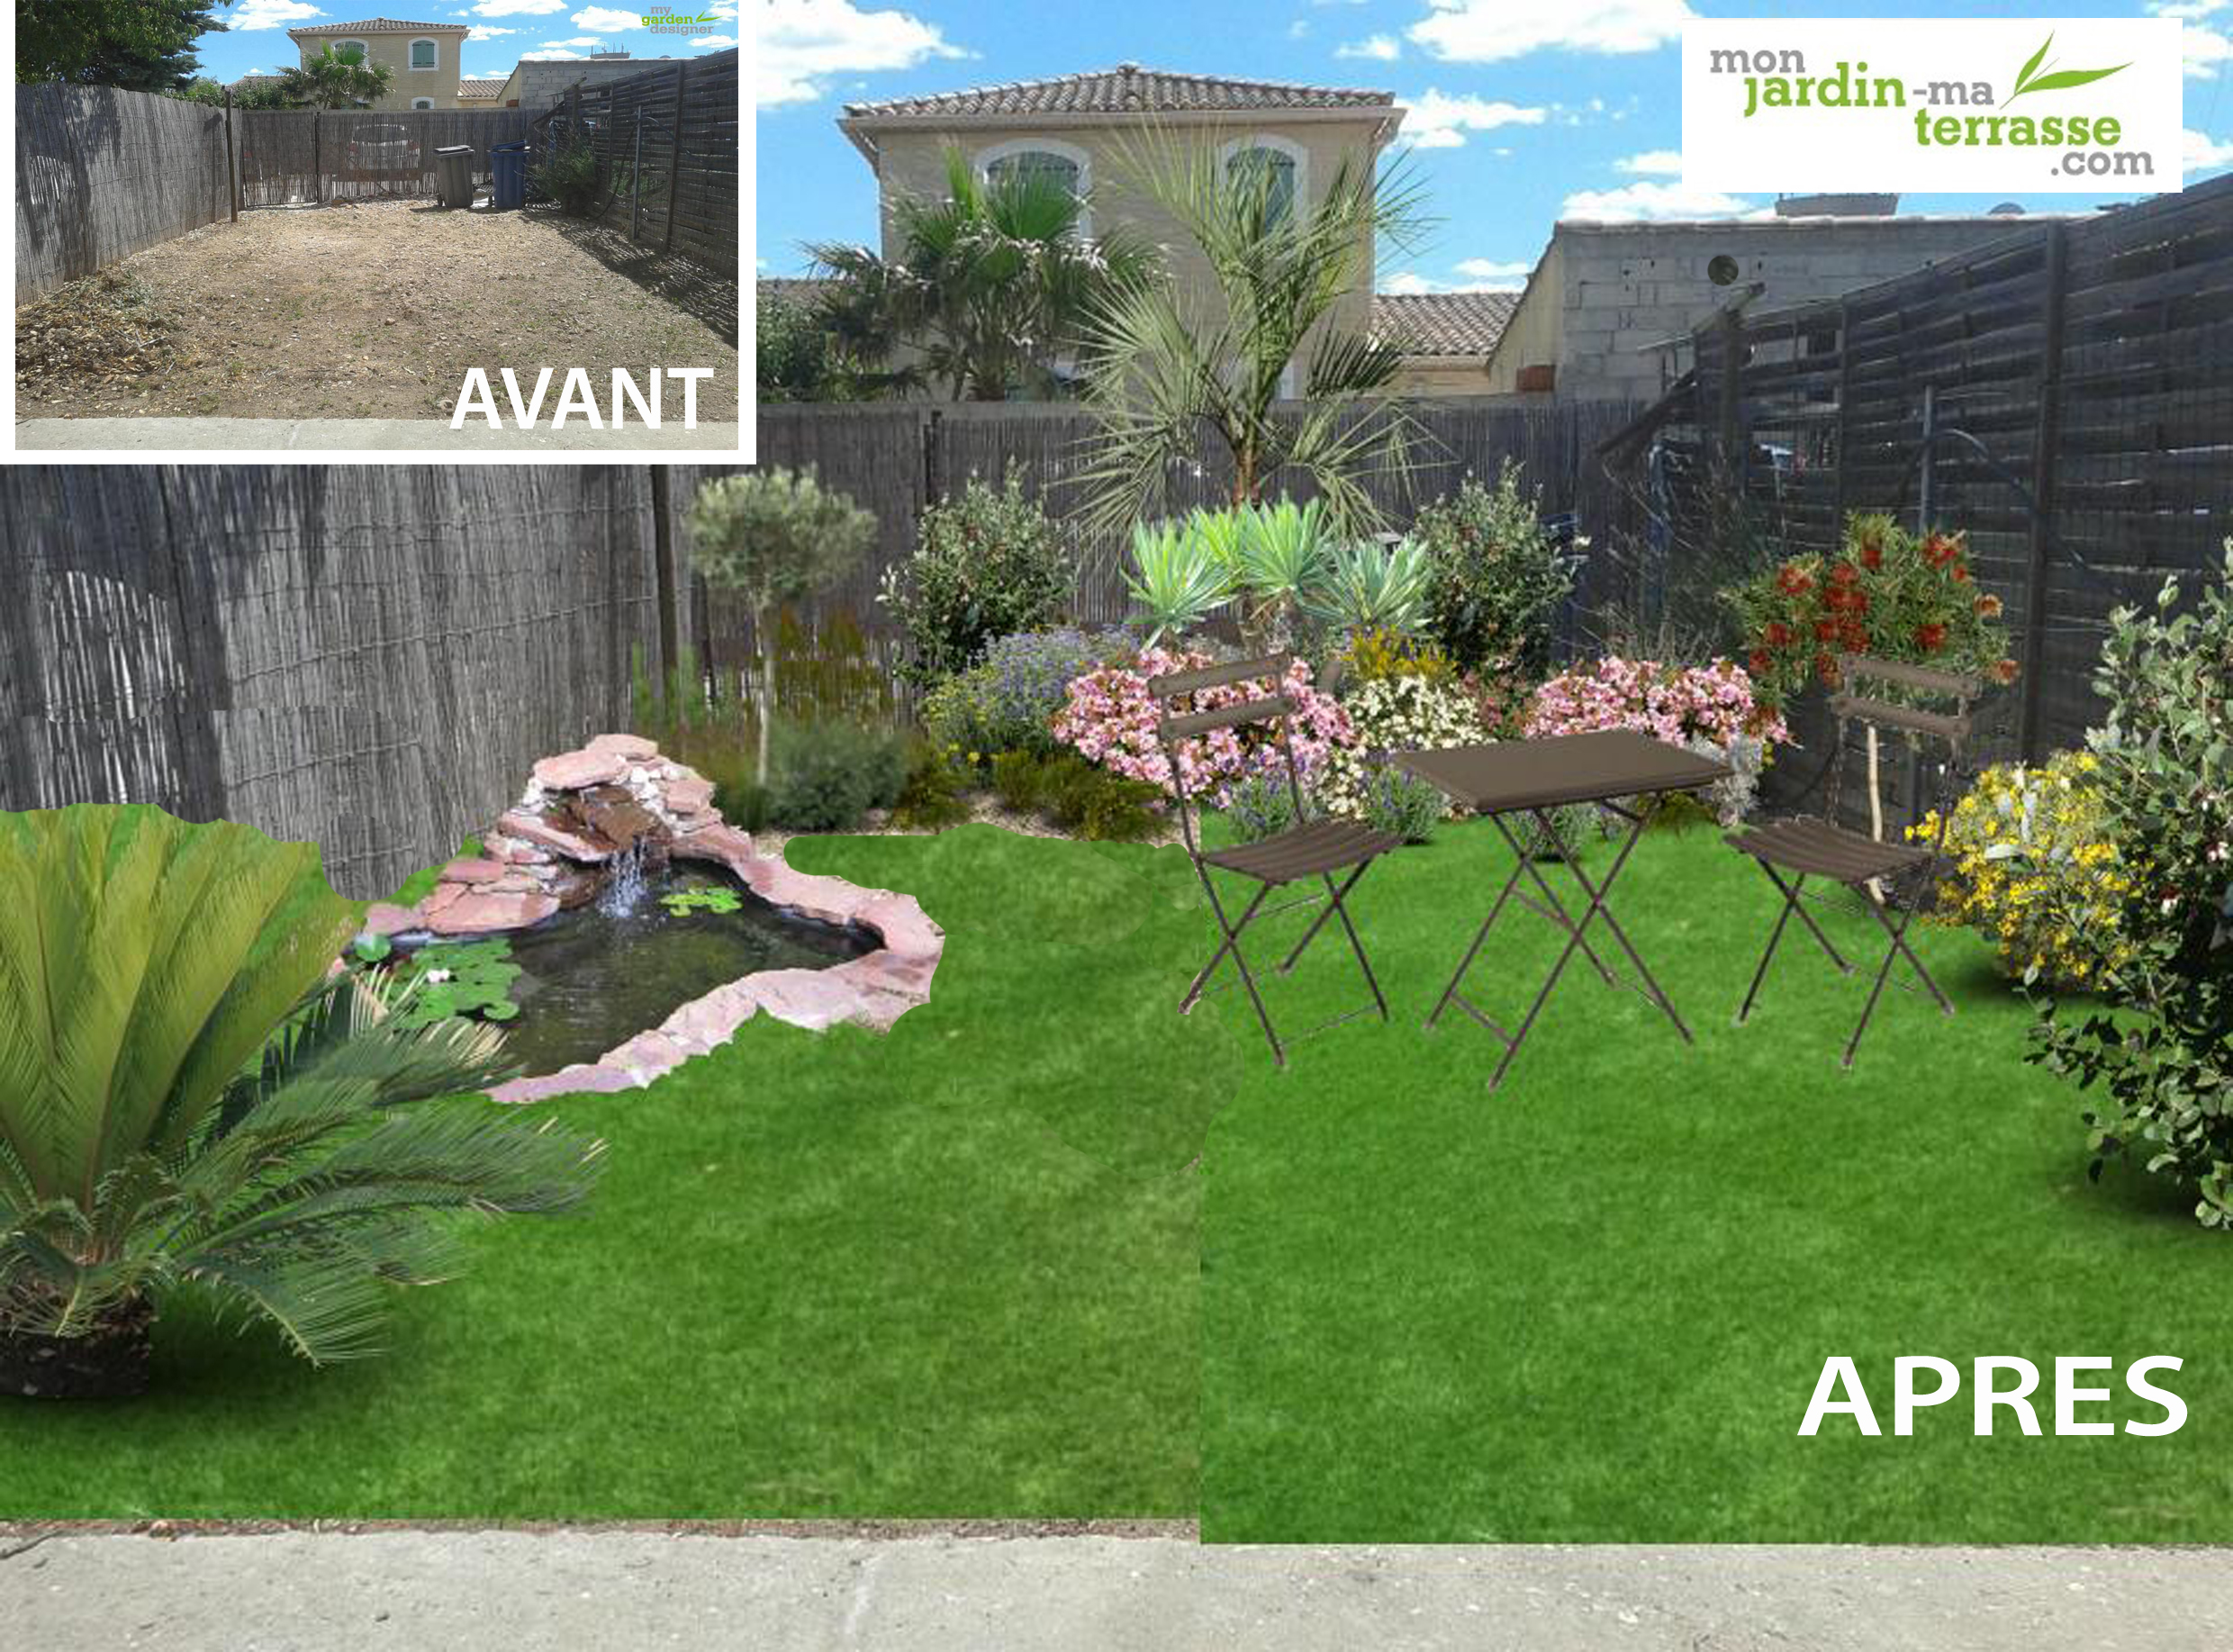 Id e d am nagement d un petit jardin monjardin for Idee d amenagement de jardin